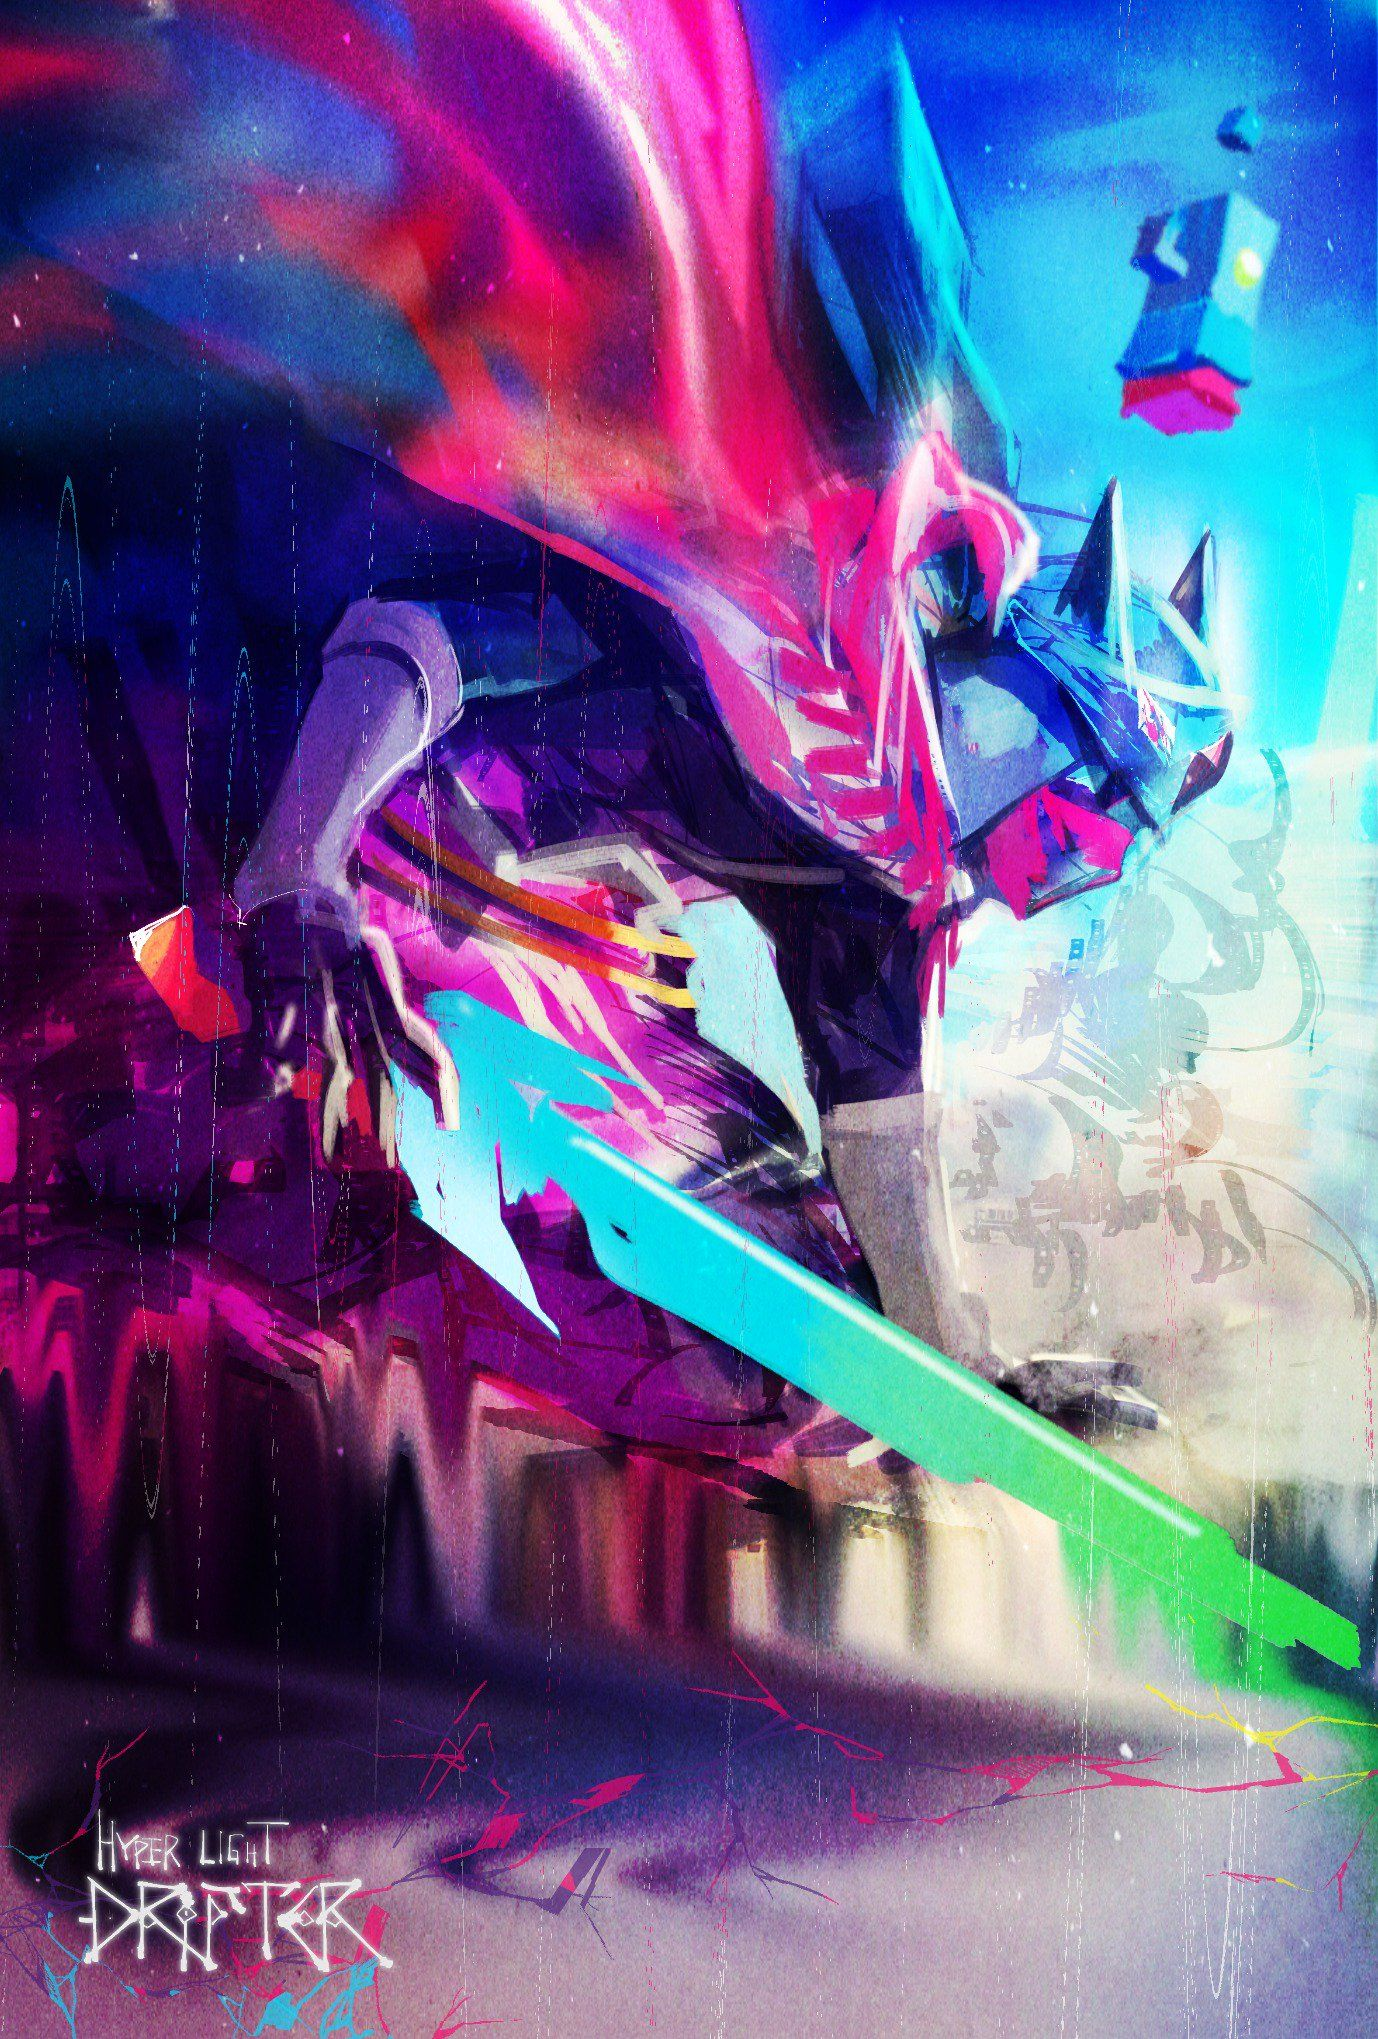 The Fearless Drifter by @tyokobanana (´⊙ω⊙`)!Arigato gozaimasu! #FearlessFriday #Fanappreciation #fanart #hyperlightdrifter https://t.co/UURvztydgb